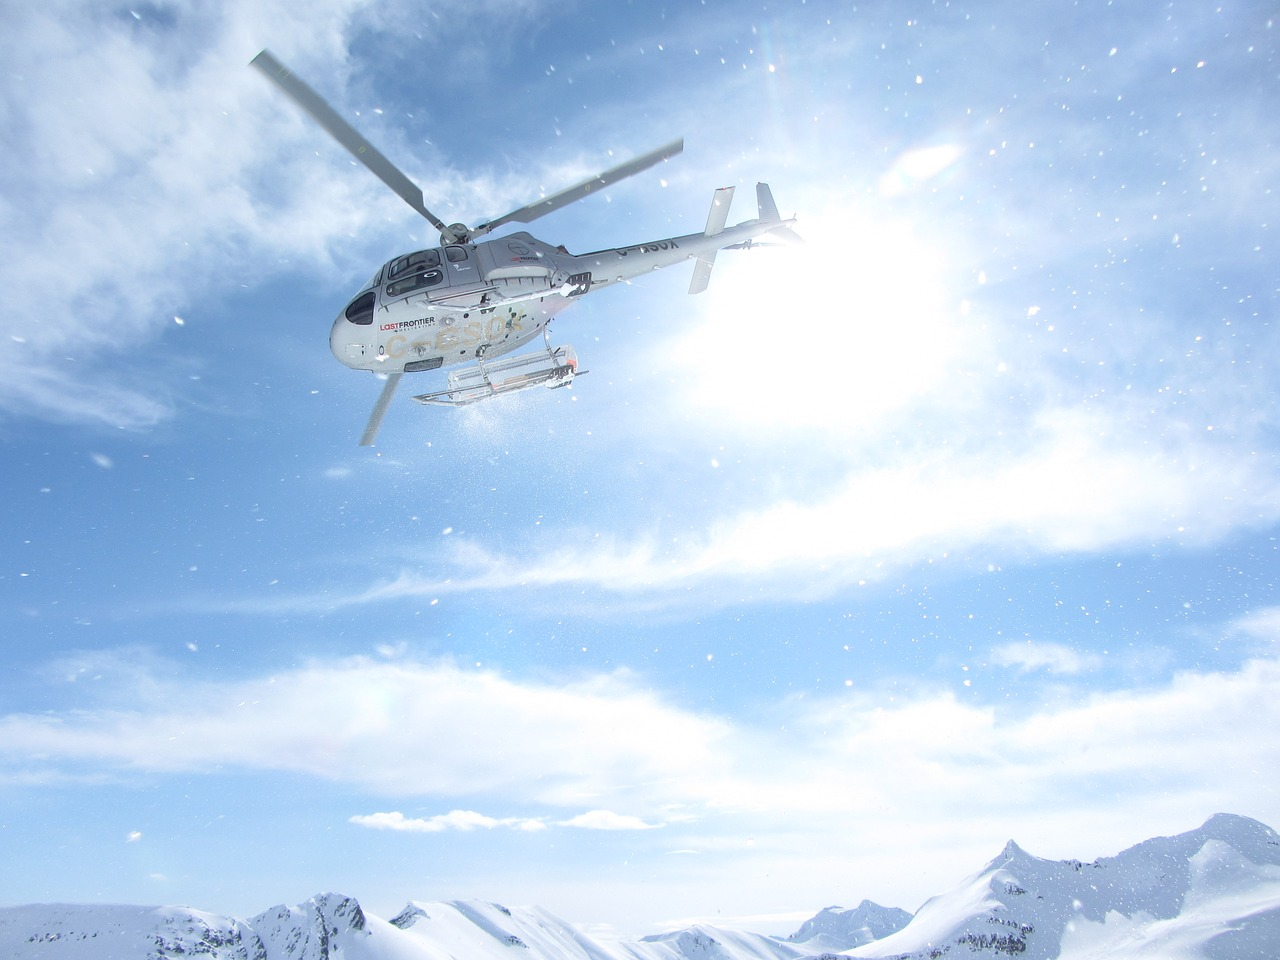 heli-skiing in europe